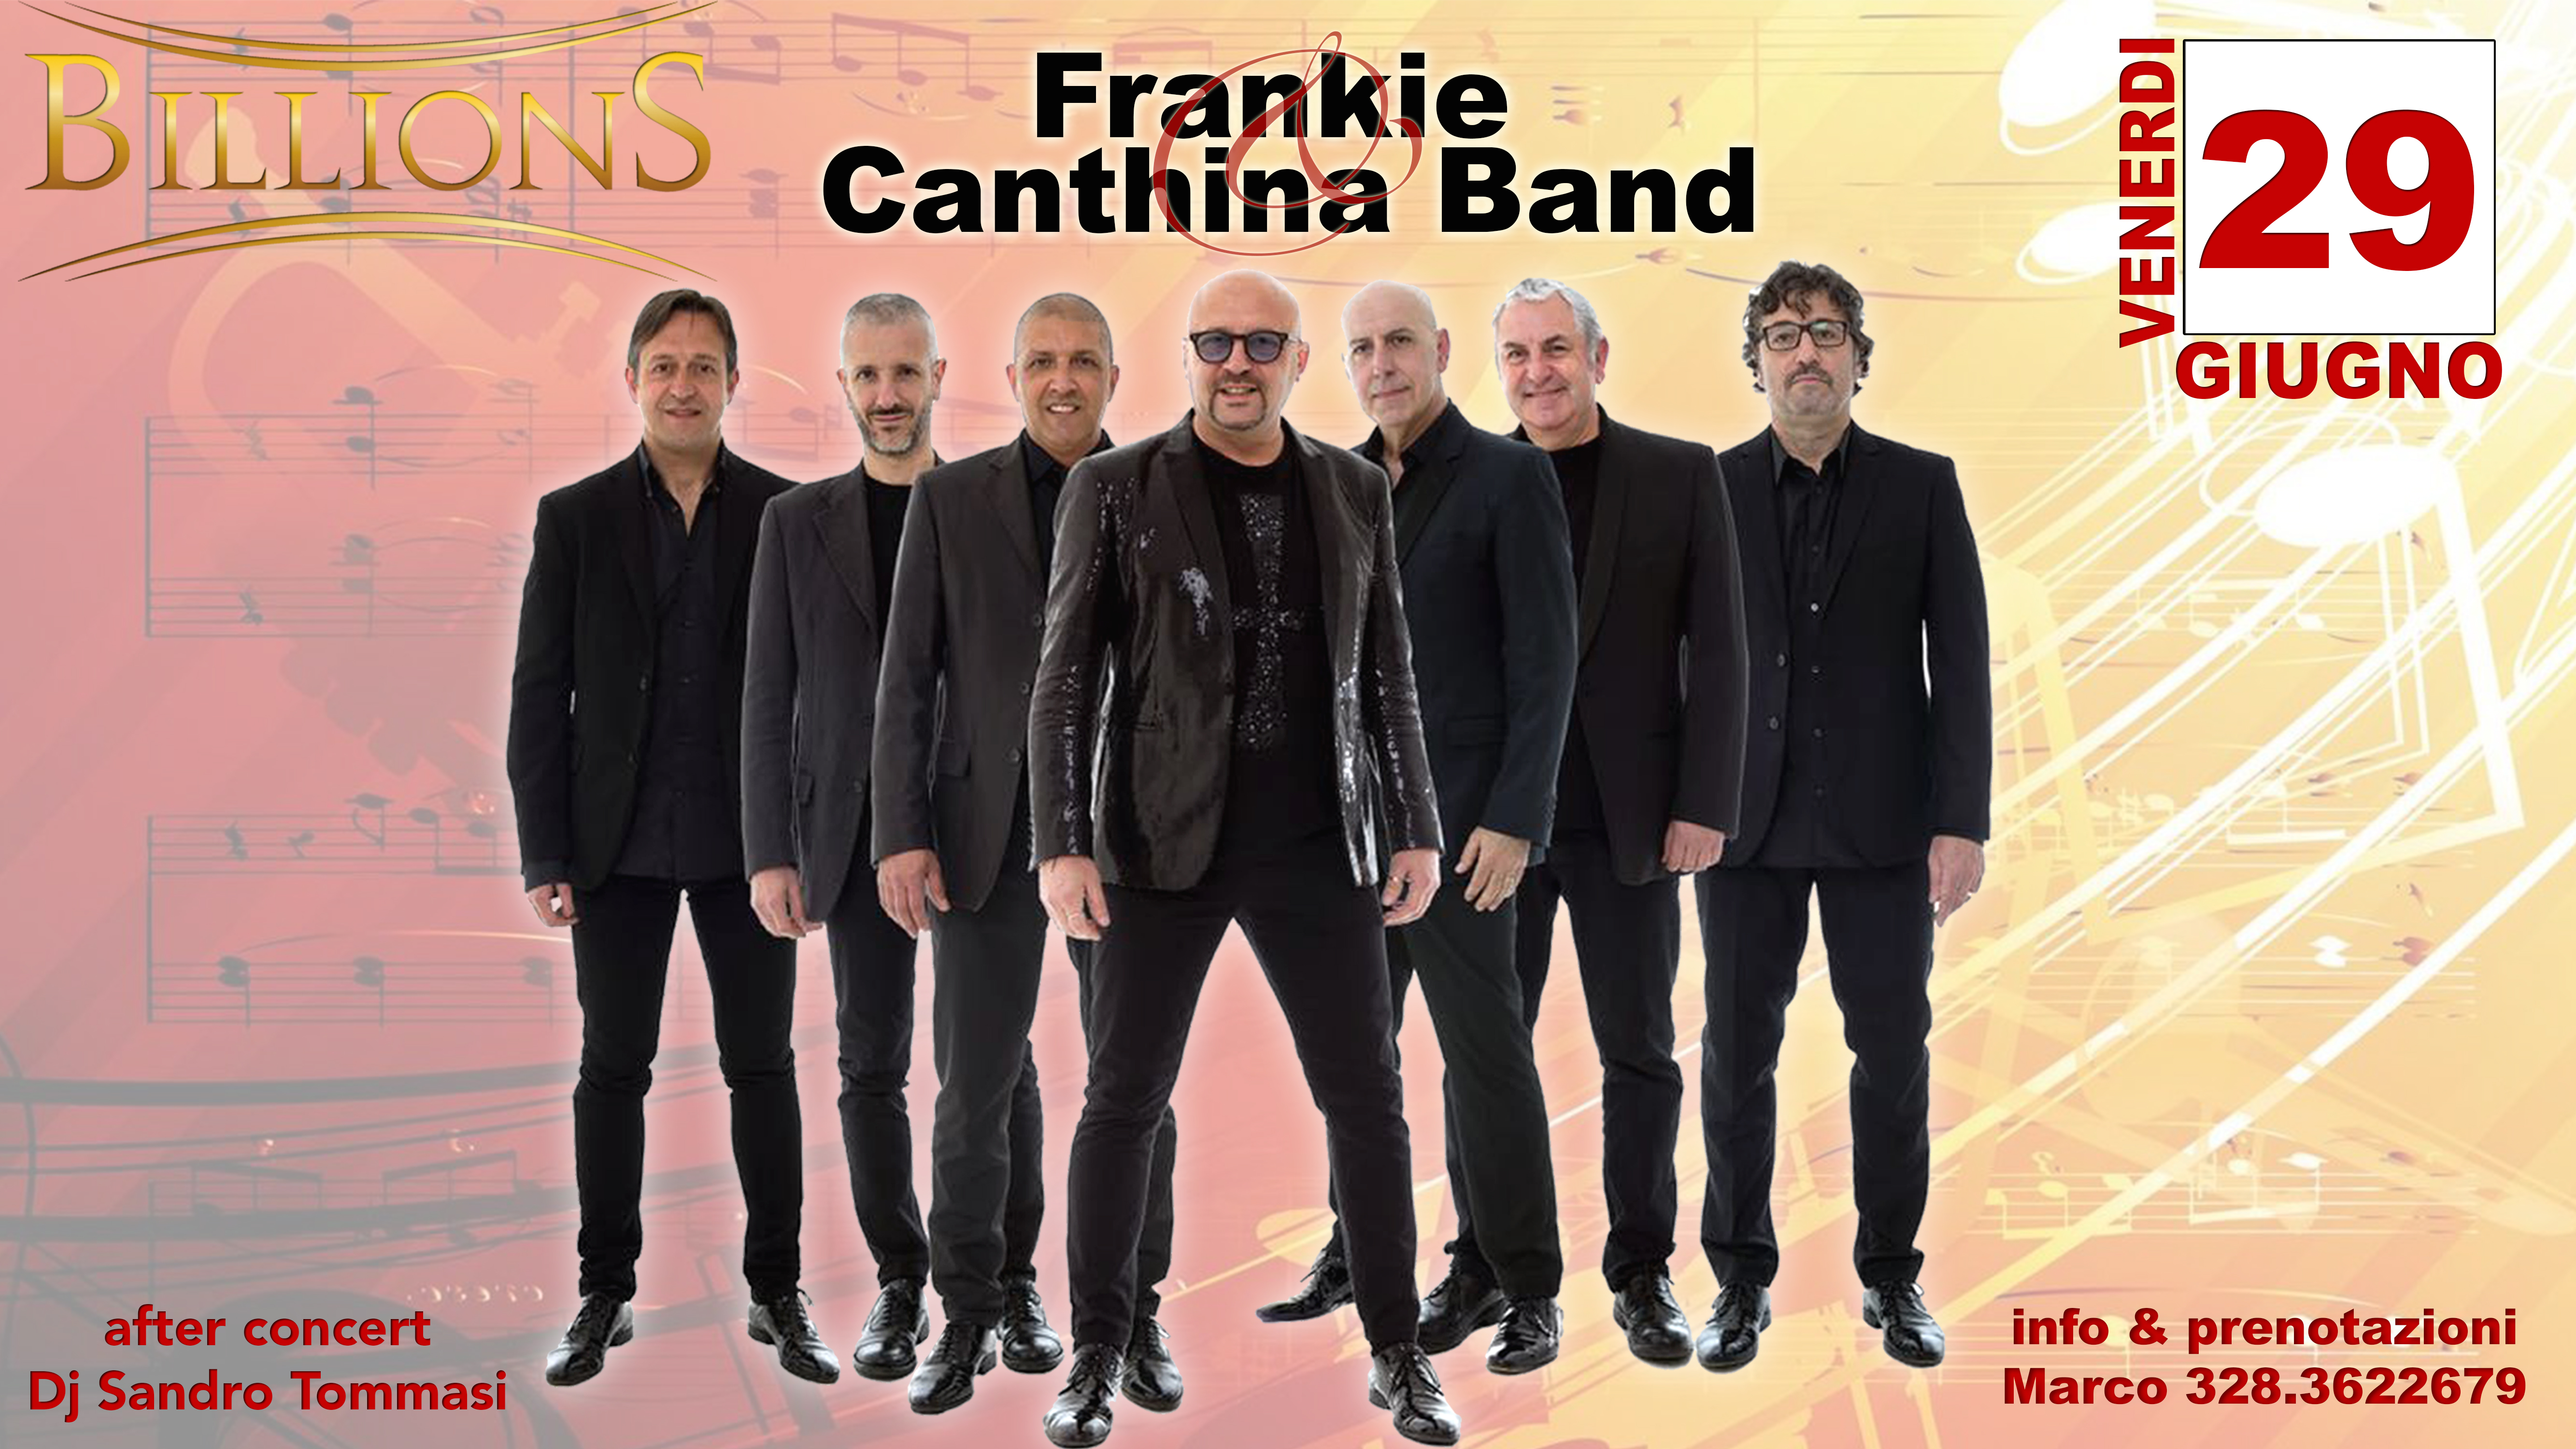 Frankie and Canthina Band